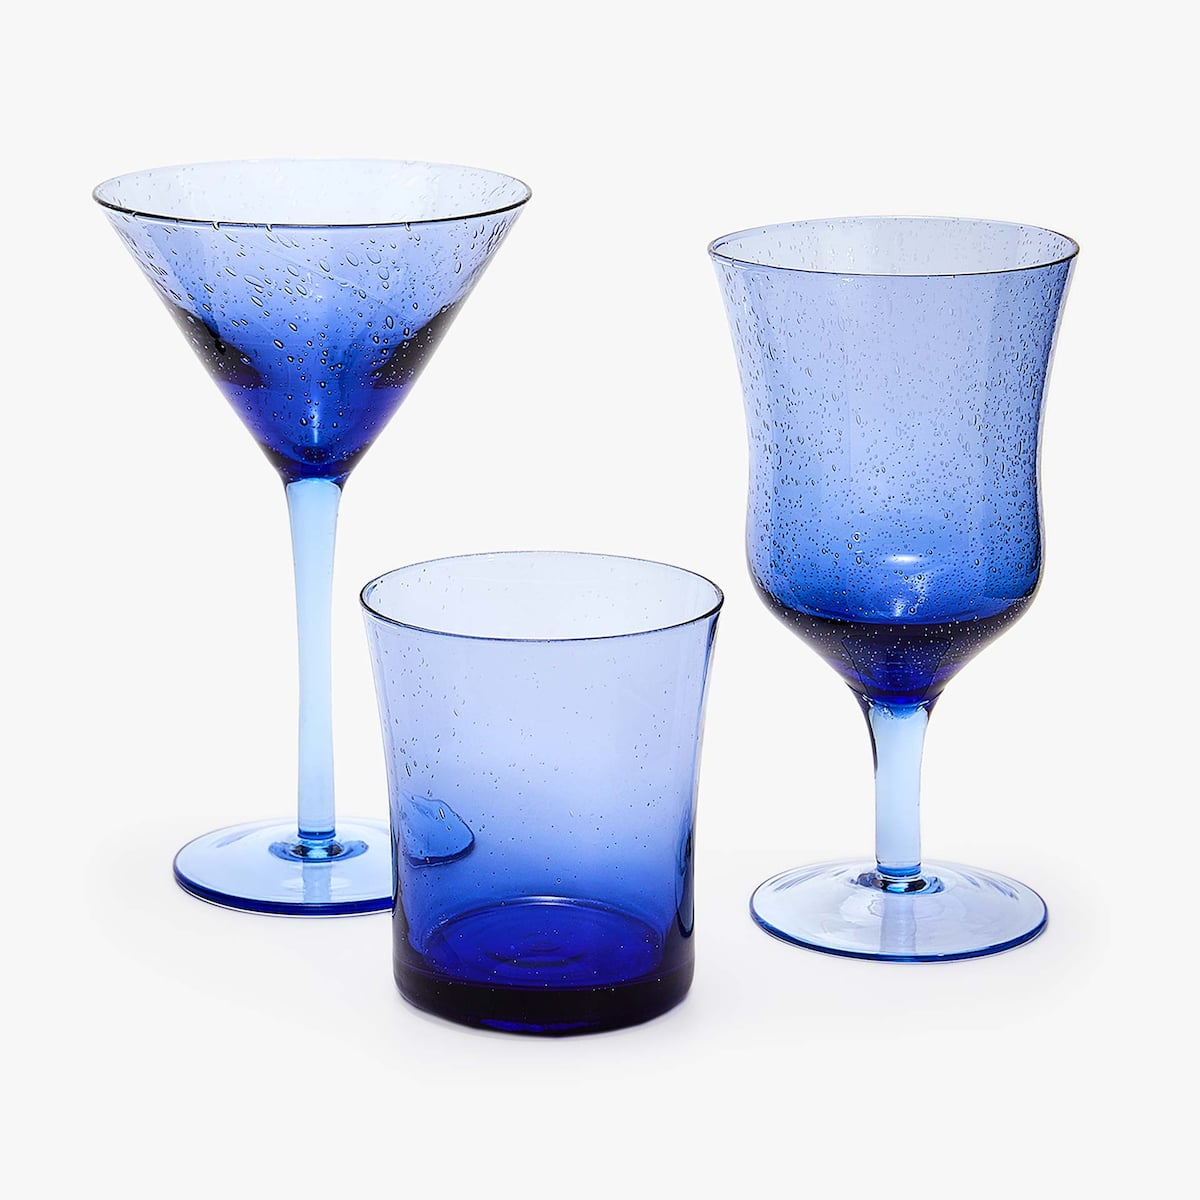 + Image 5 Of The Product BLUE BUBBLES EFFECT MARTINI GLASS